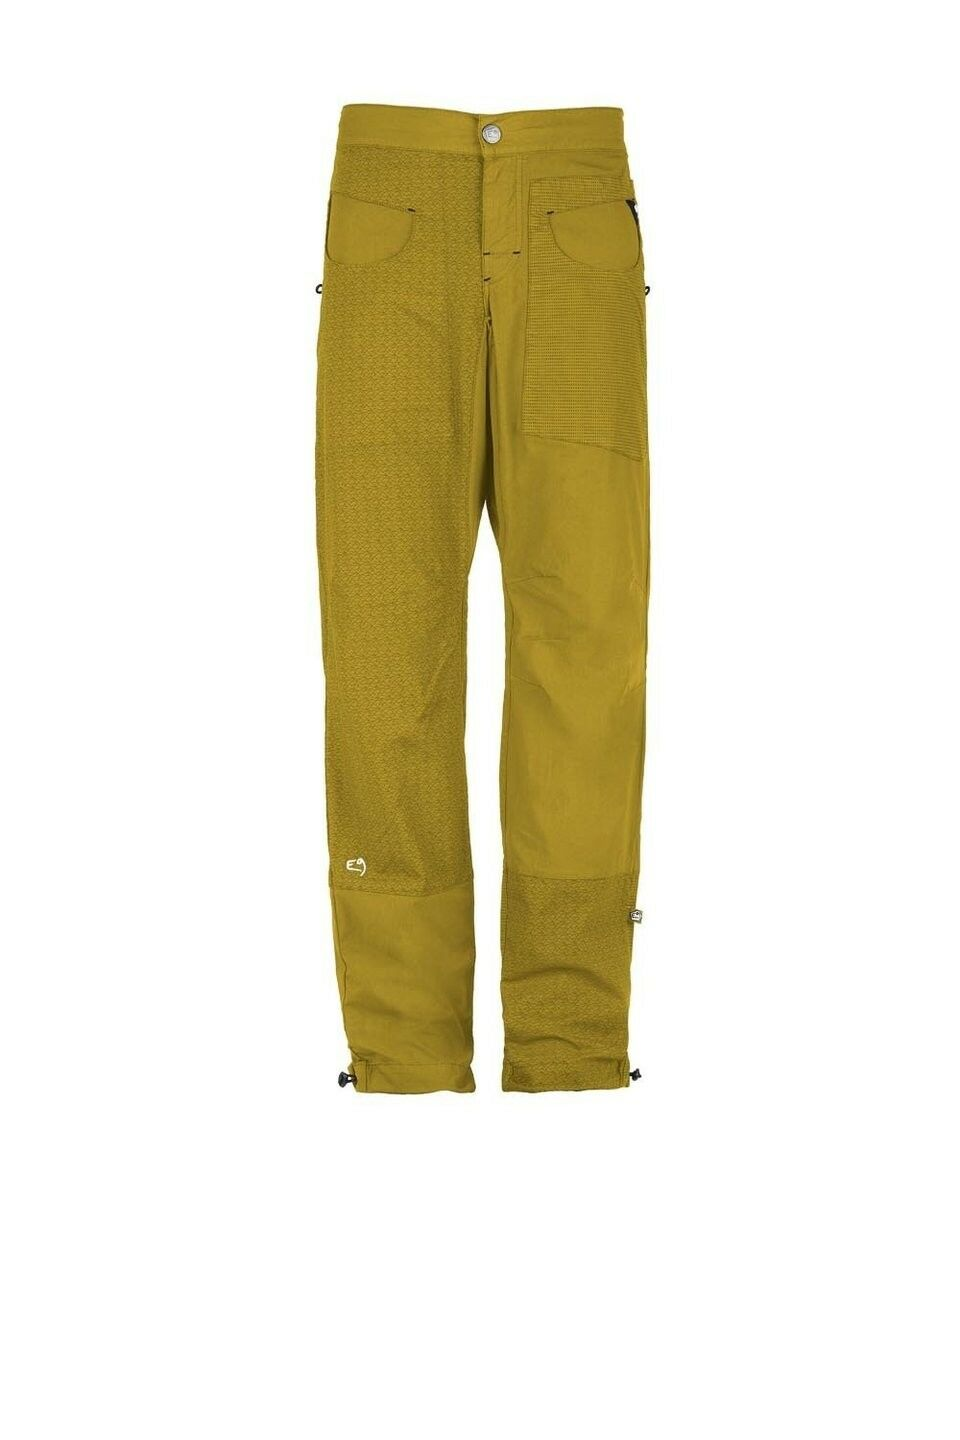 E9  Blat 2, Climbing Pants for Men, Olive Size XL  free shipping